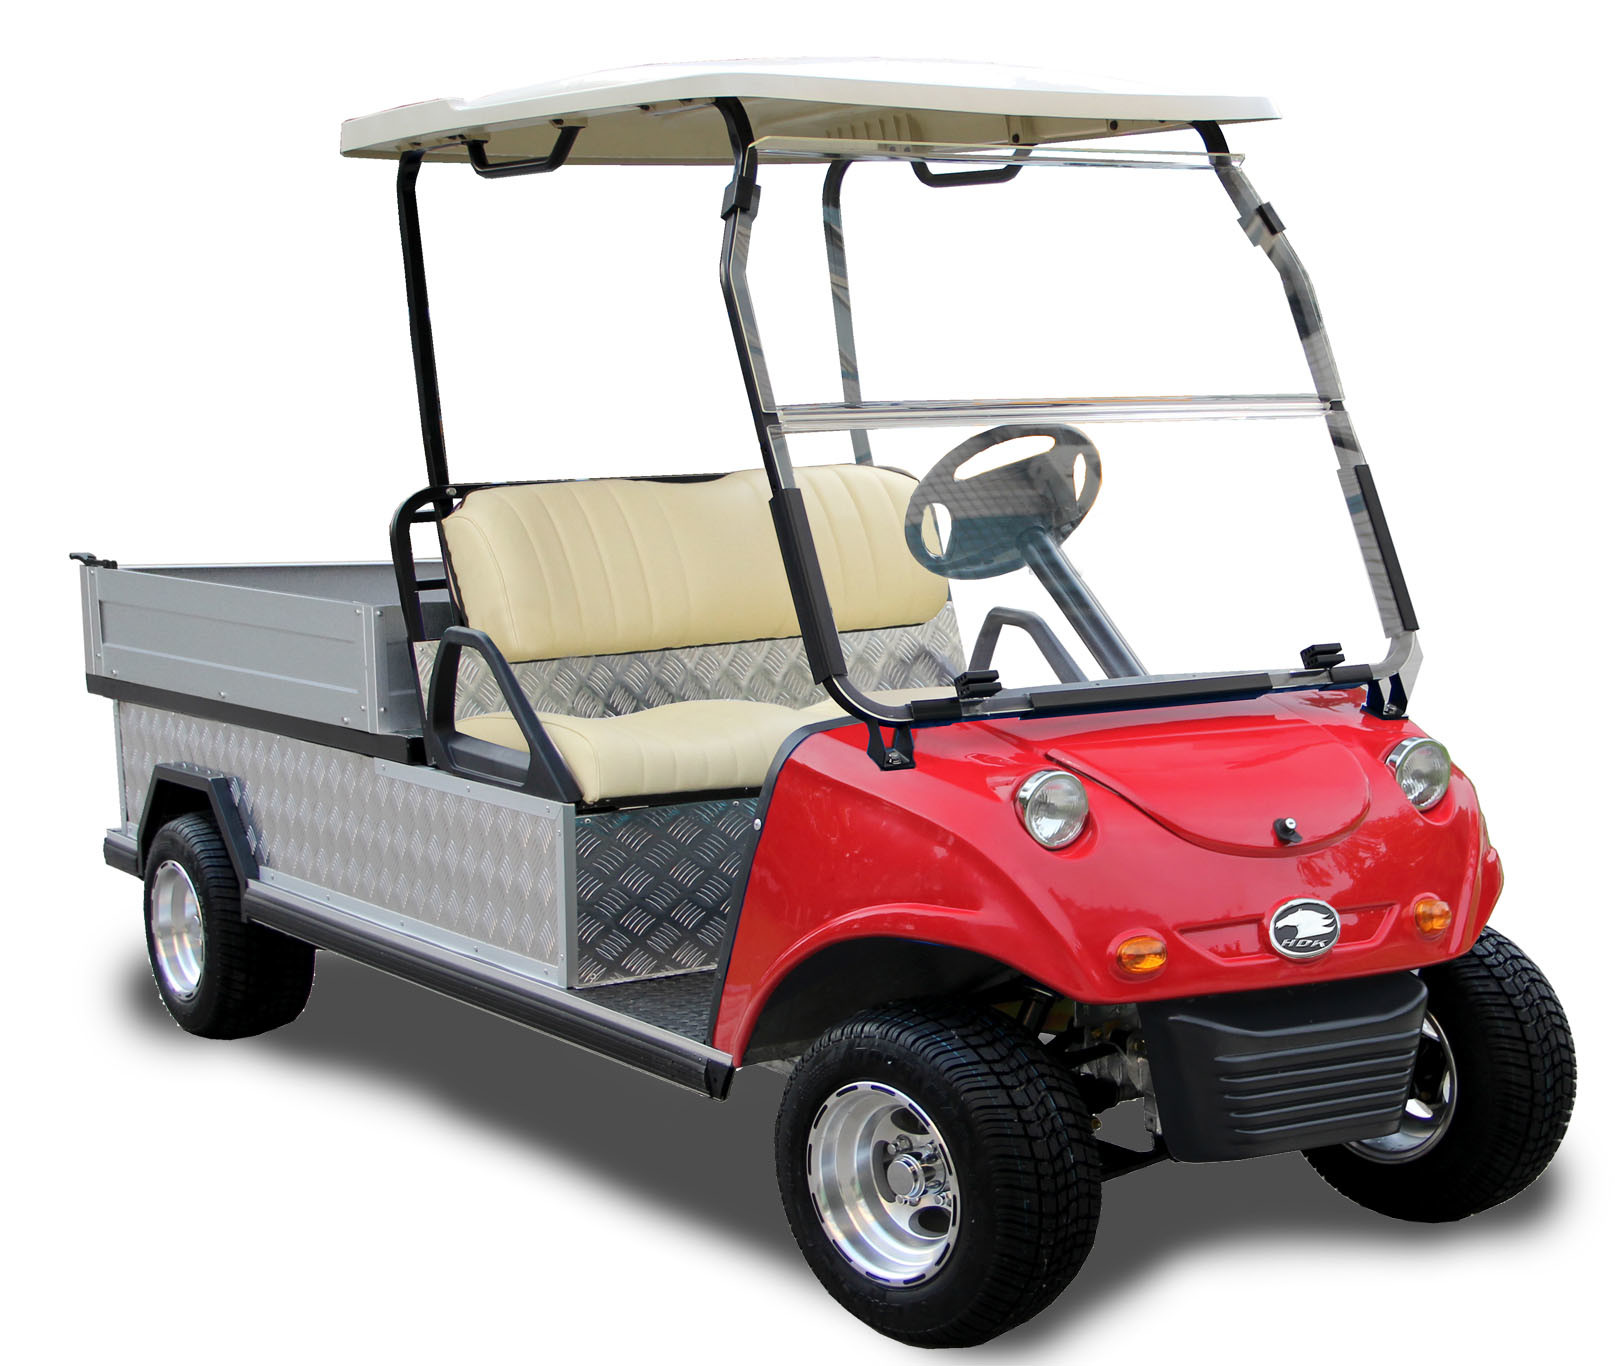 China Electric Utility Cargo Vehicle with Flat Bed - China Utility on golf cart utility cart, electric dolly cart, electric truck cart, electric cargo cart, electric platform cart, electric utility cart, electric box cart, kubota golf beverage cart, electric dump cart, electric flat cart, electric material handling cart, electric car cart, electric meter, electric rail cart, electric service cart, old electric cart, columbia electric cart, electric powered cart,